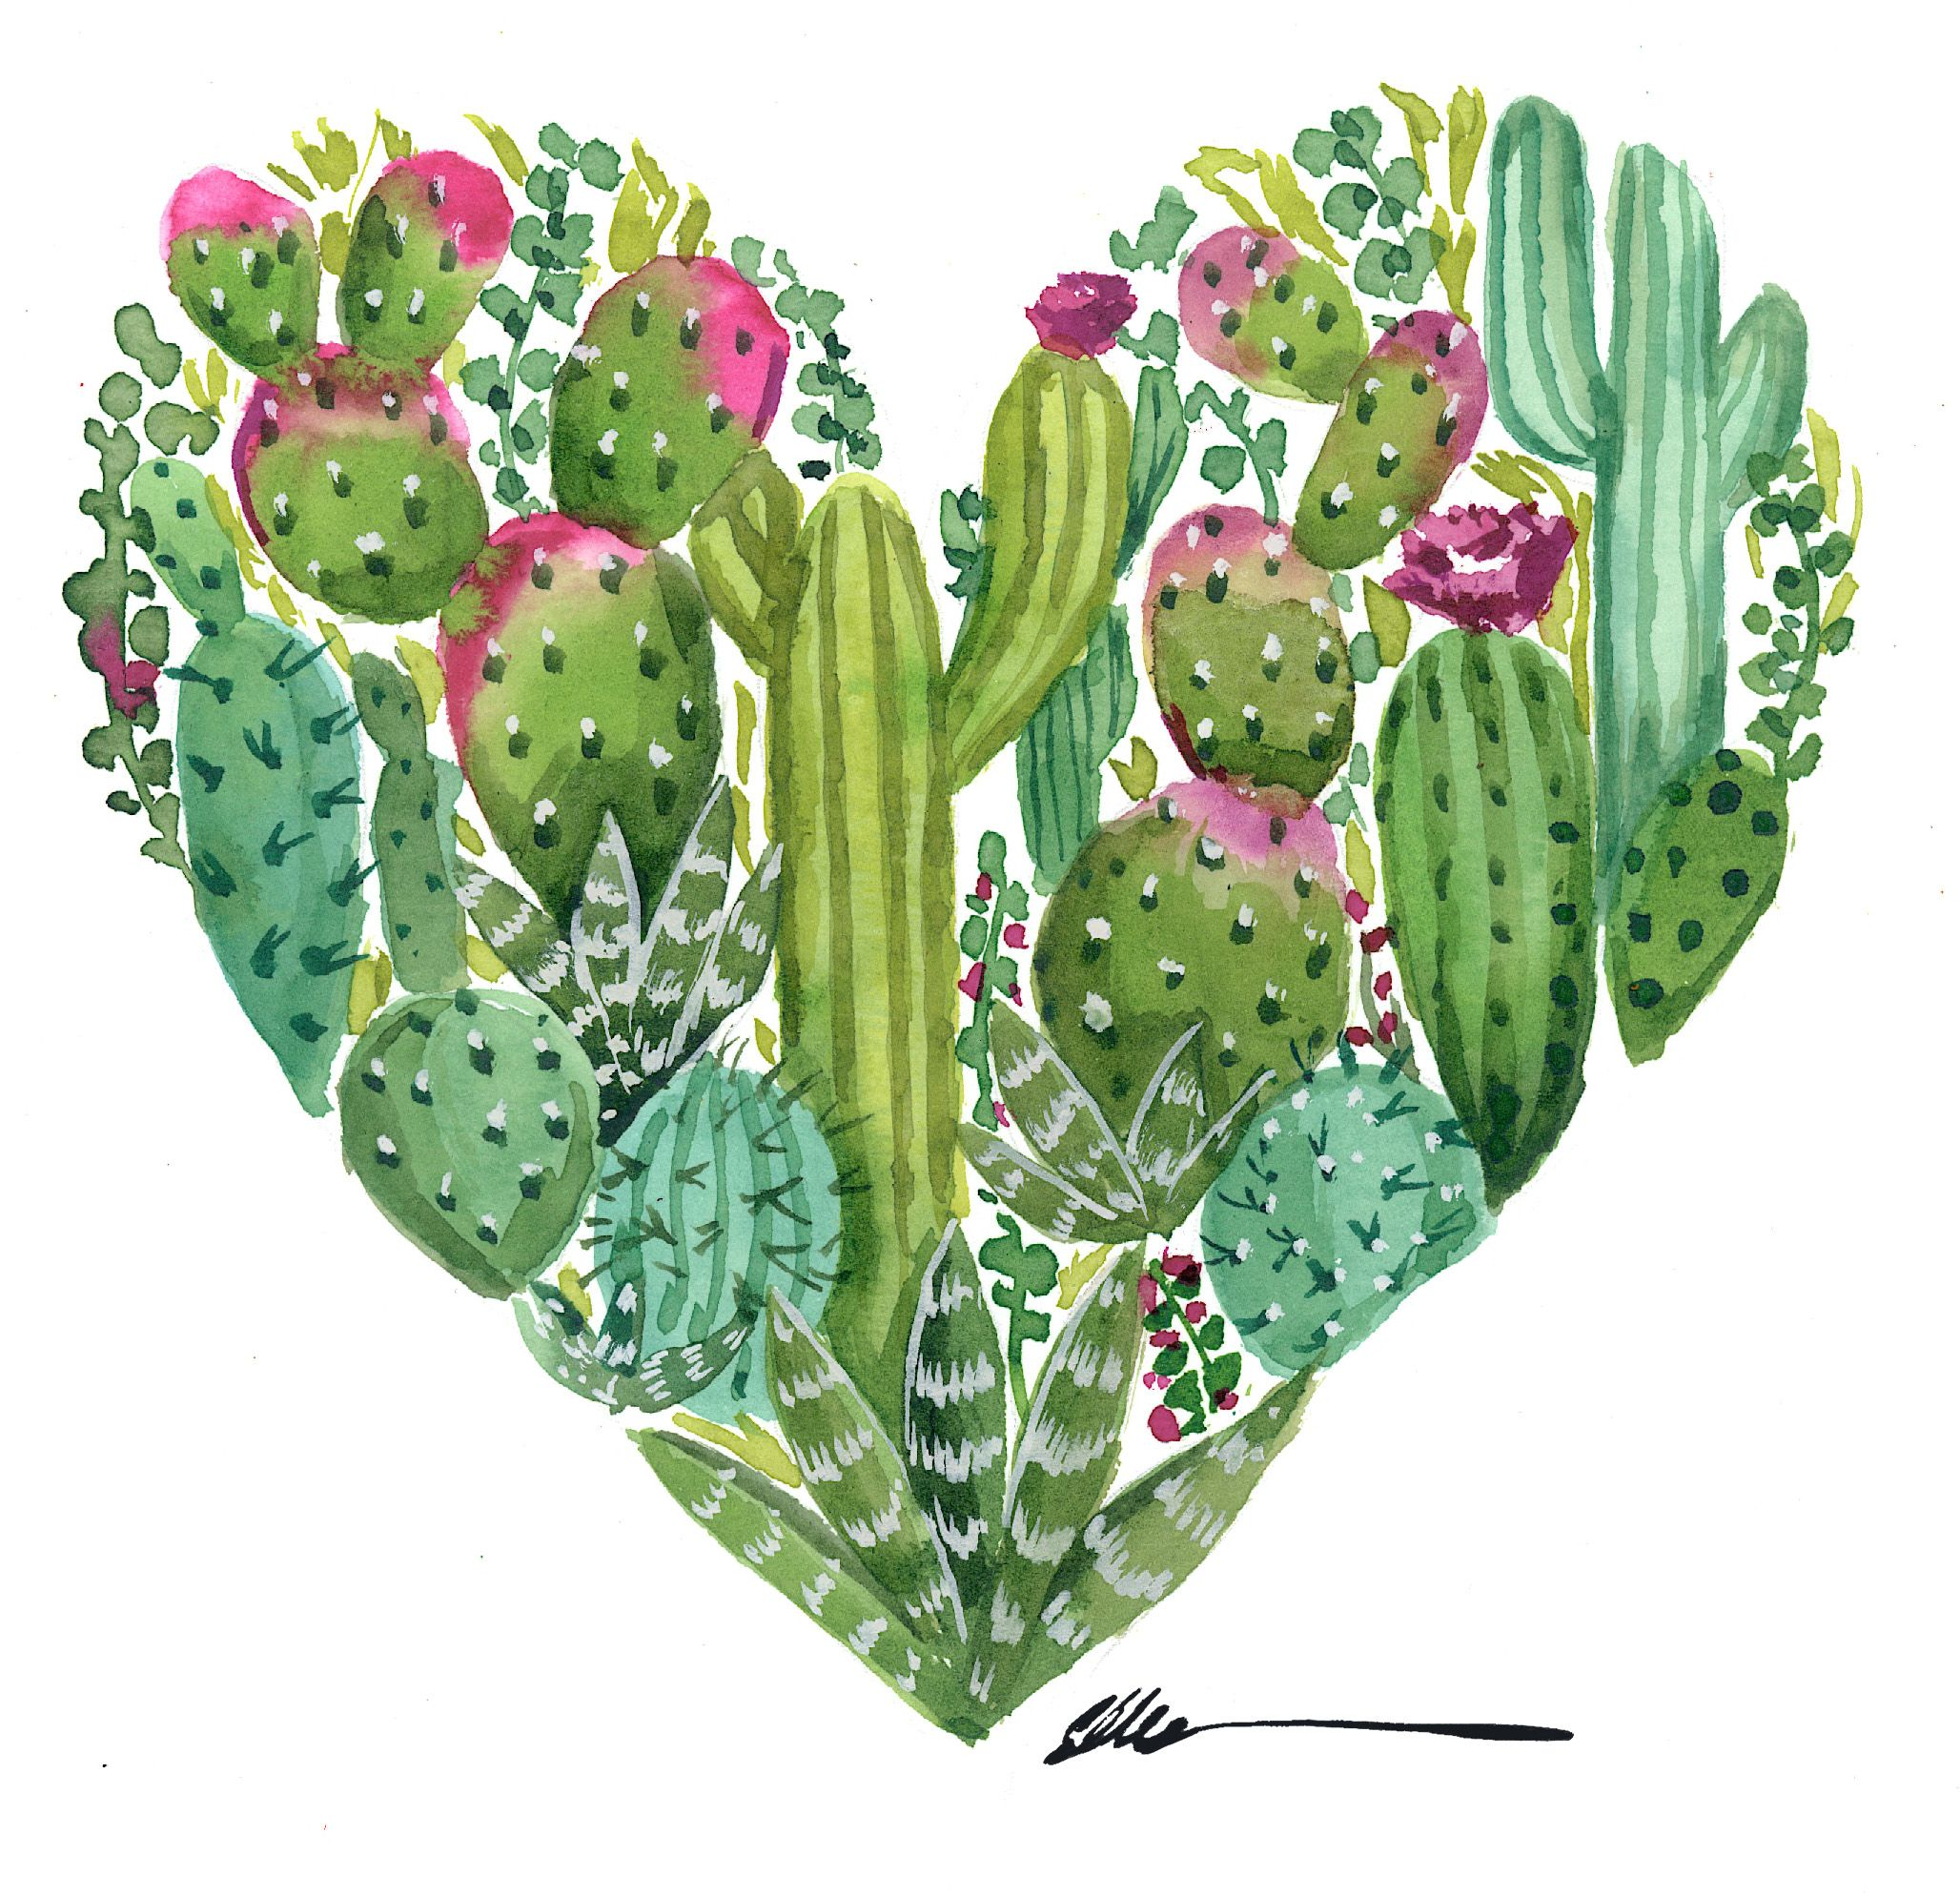 Cactus Heart Original Watercolor Painting Cactus Illustration